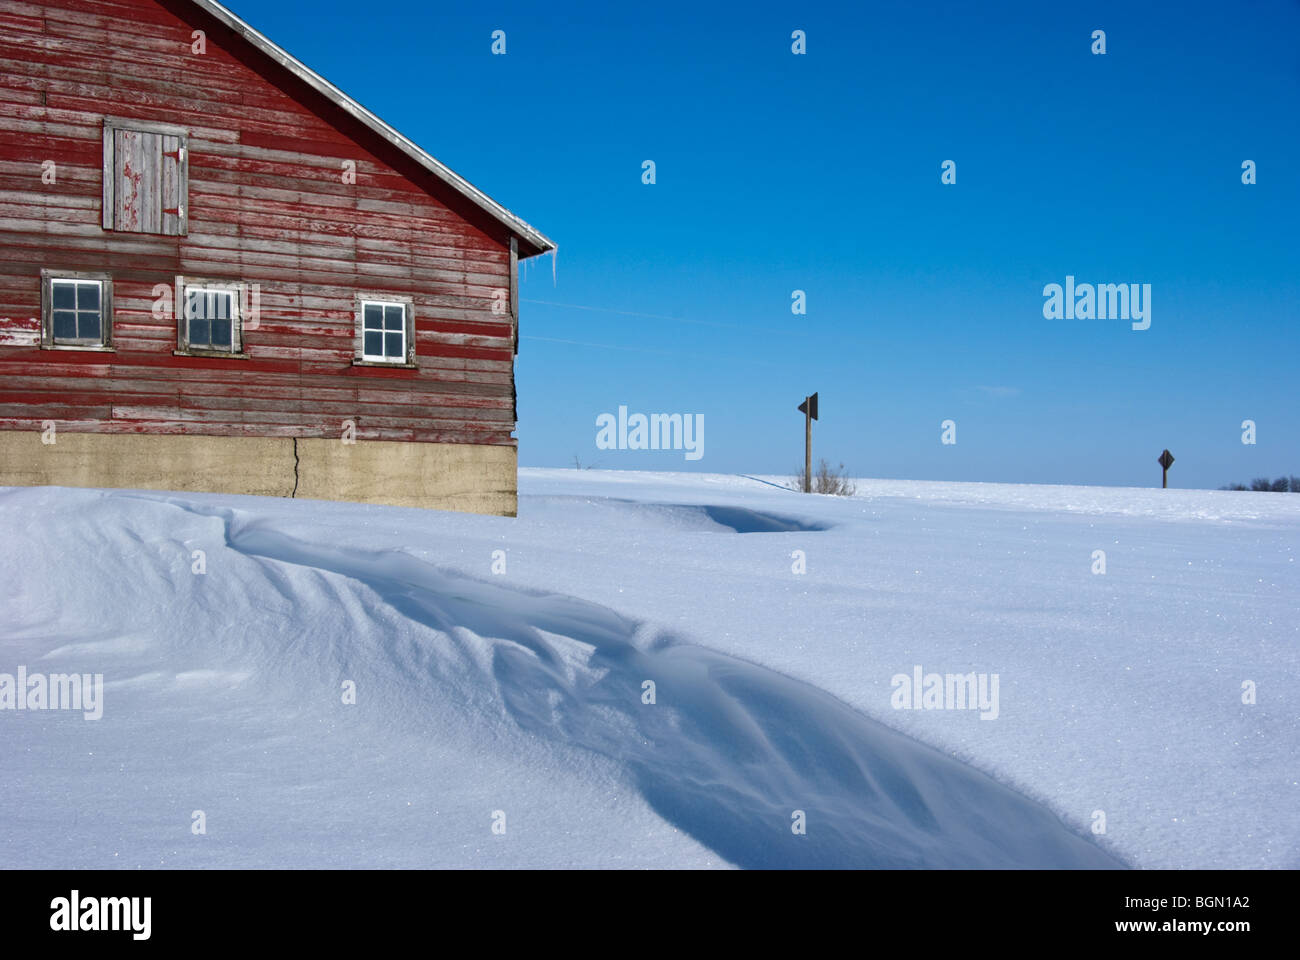 A textured snowdrift and an old red barn against a blue sky - Stock Image